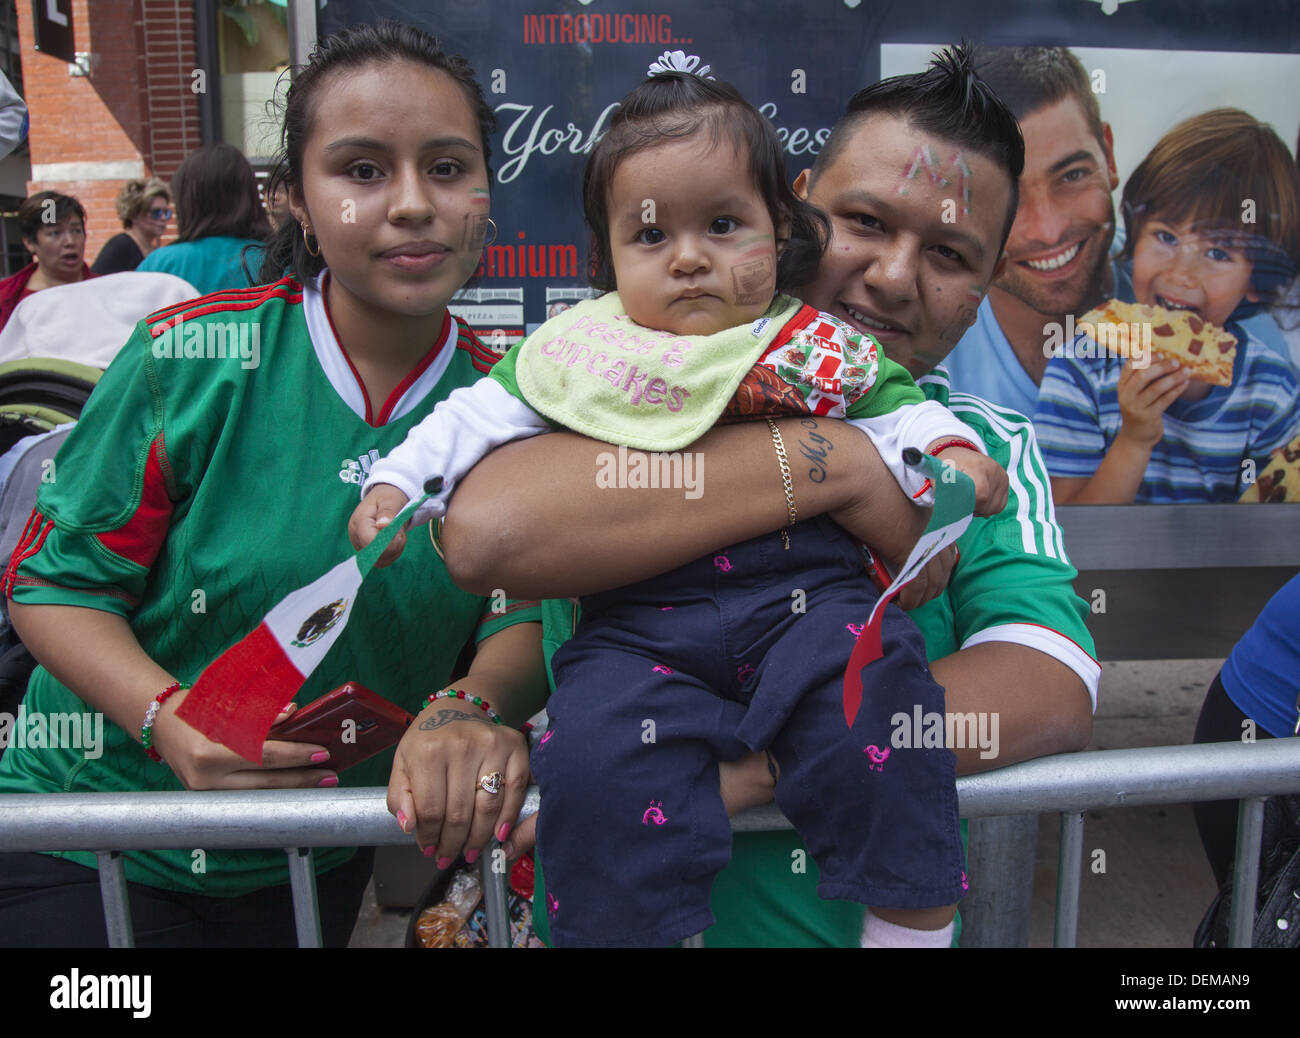 Mexican Independence Day Parade on Madison Avenue, NYC. Mexican spectators watch the parade with pride. - Stock Image